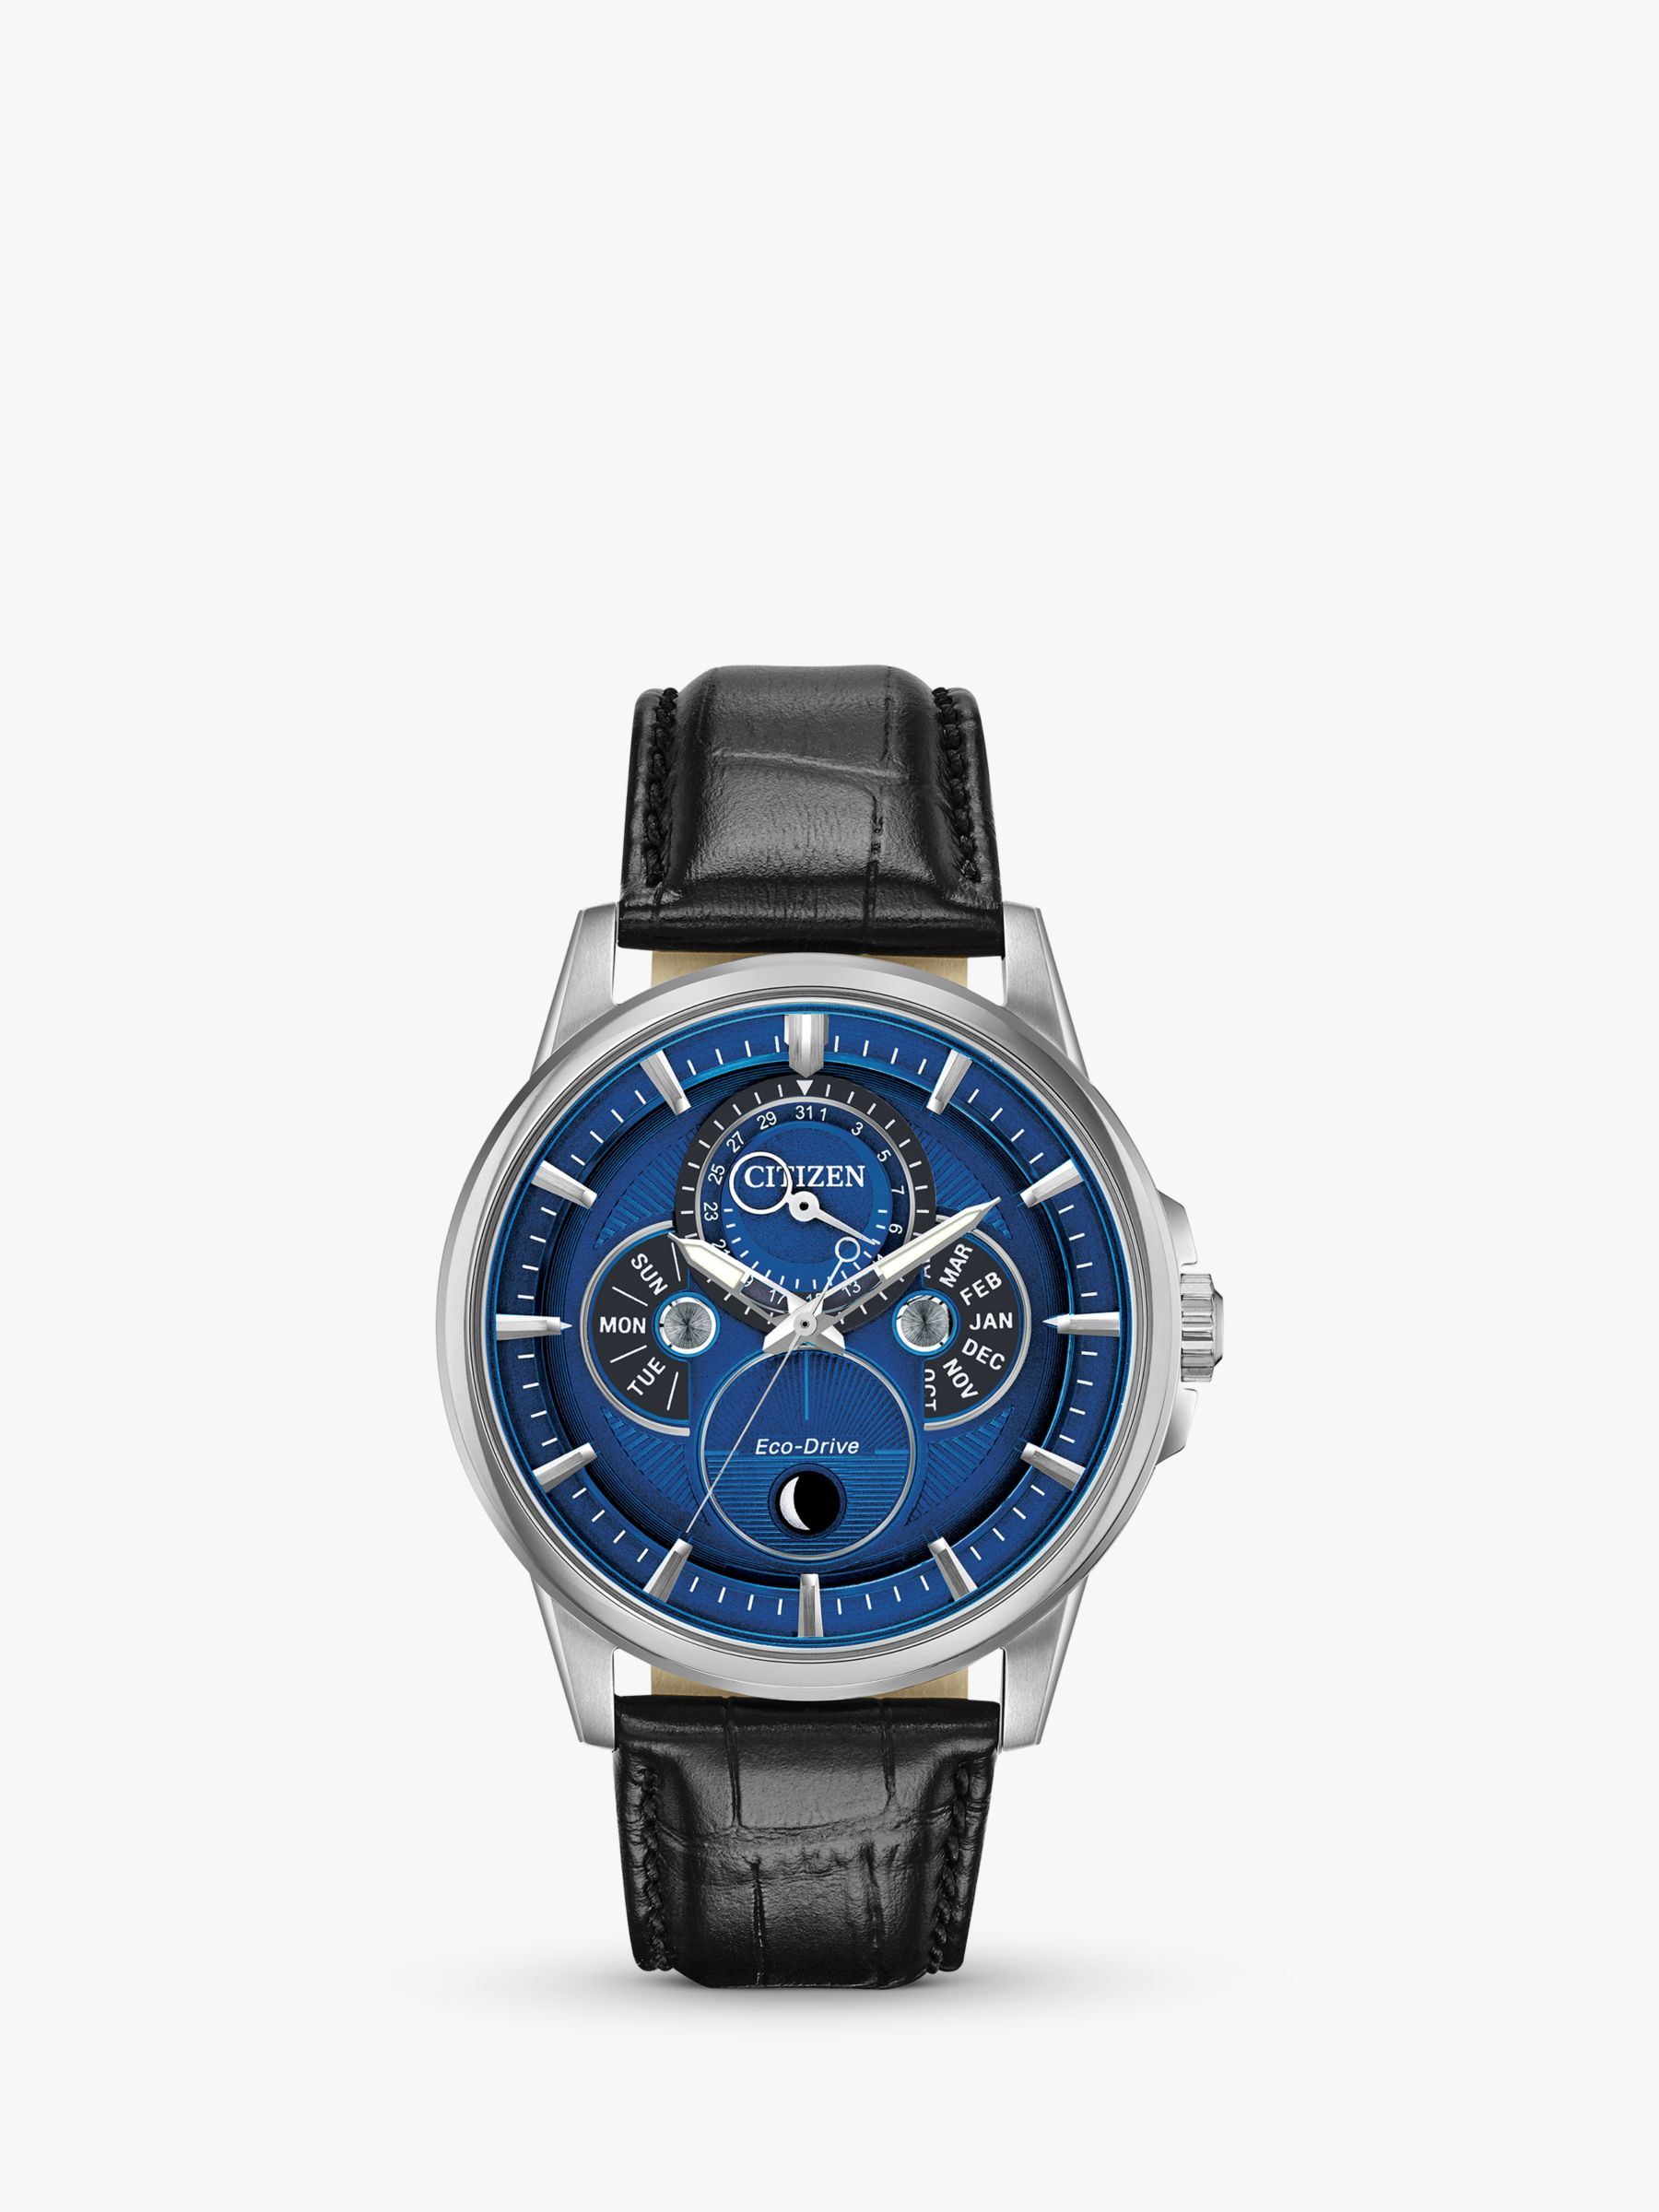 Citizen Citizen BU0050-02L Men's Calendrier Chronograph Moon Leather Strap Watch, Black/Blue